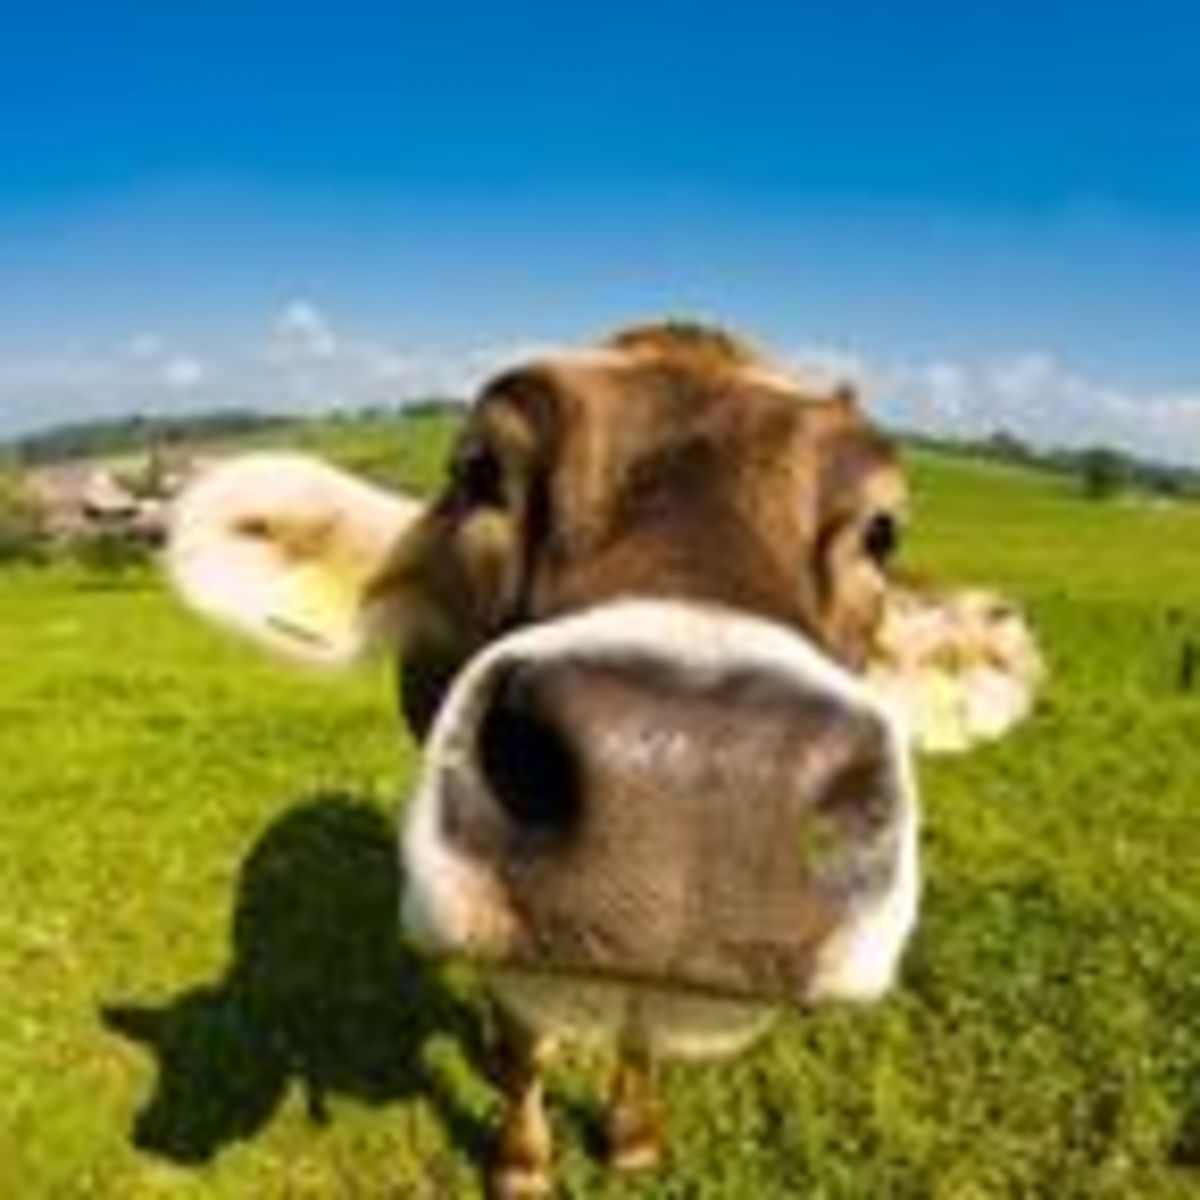 Cows: Science Shows They're Bright and Emotional Individuals